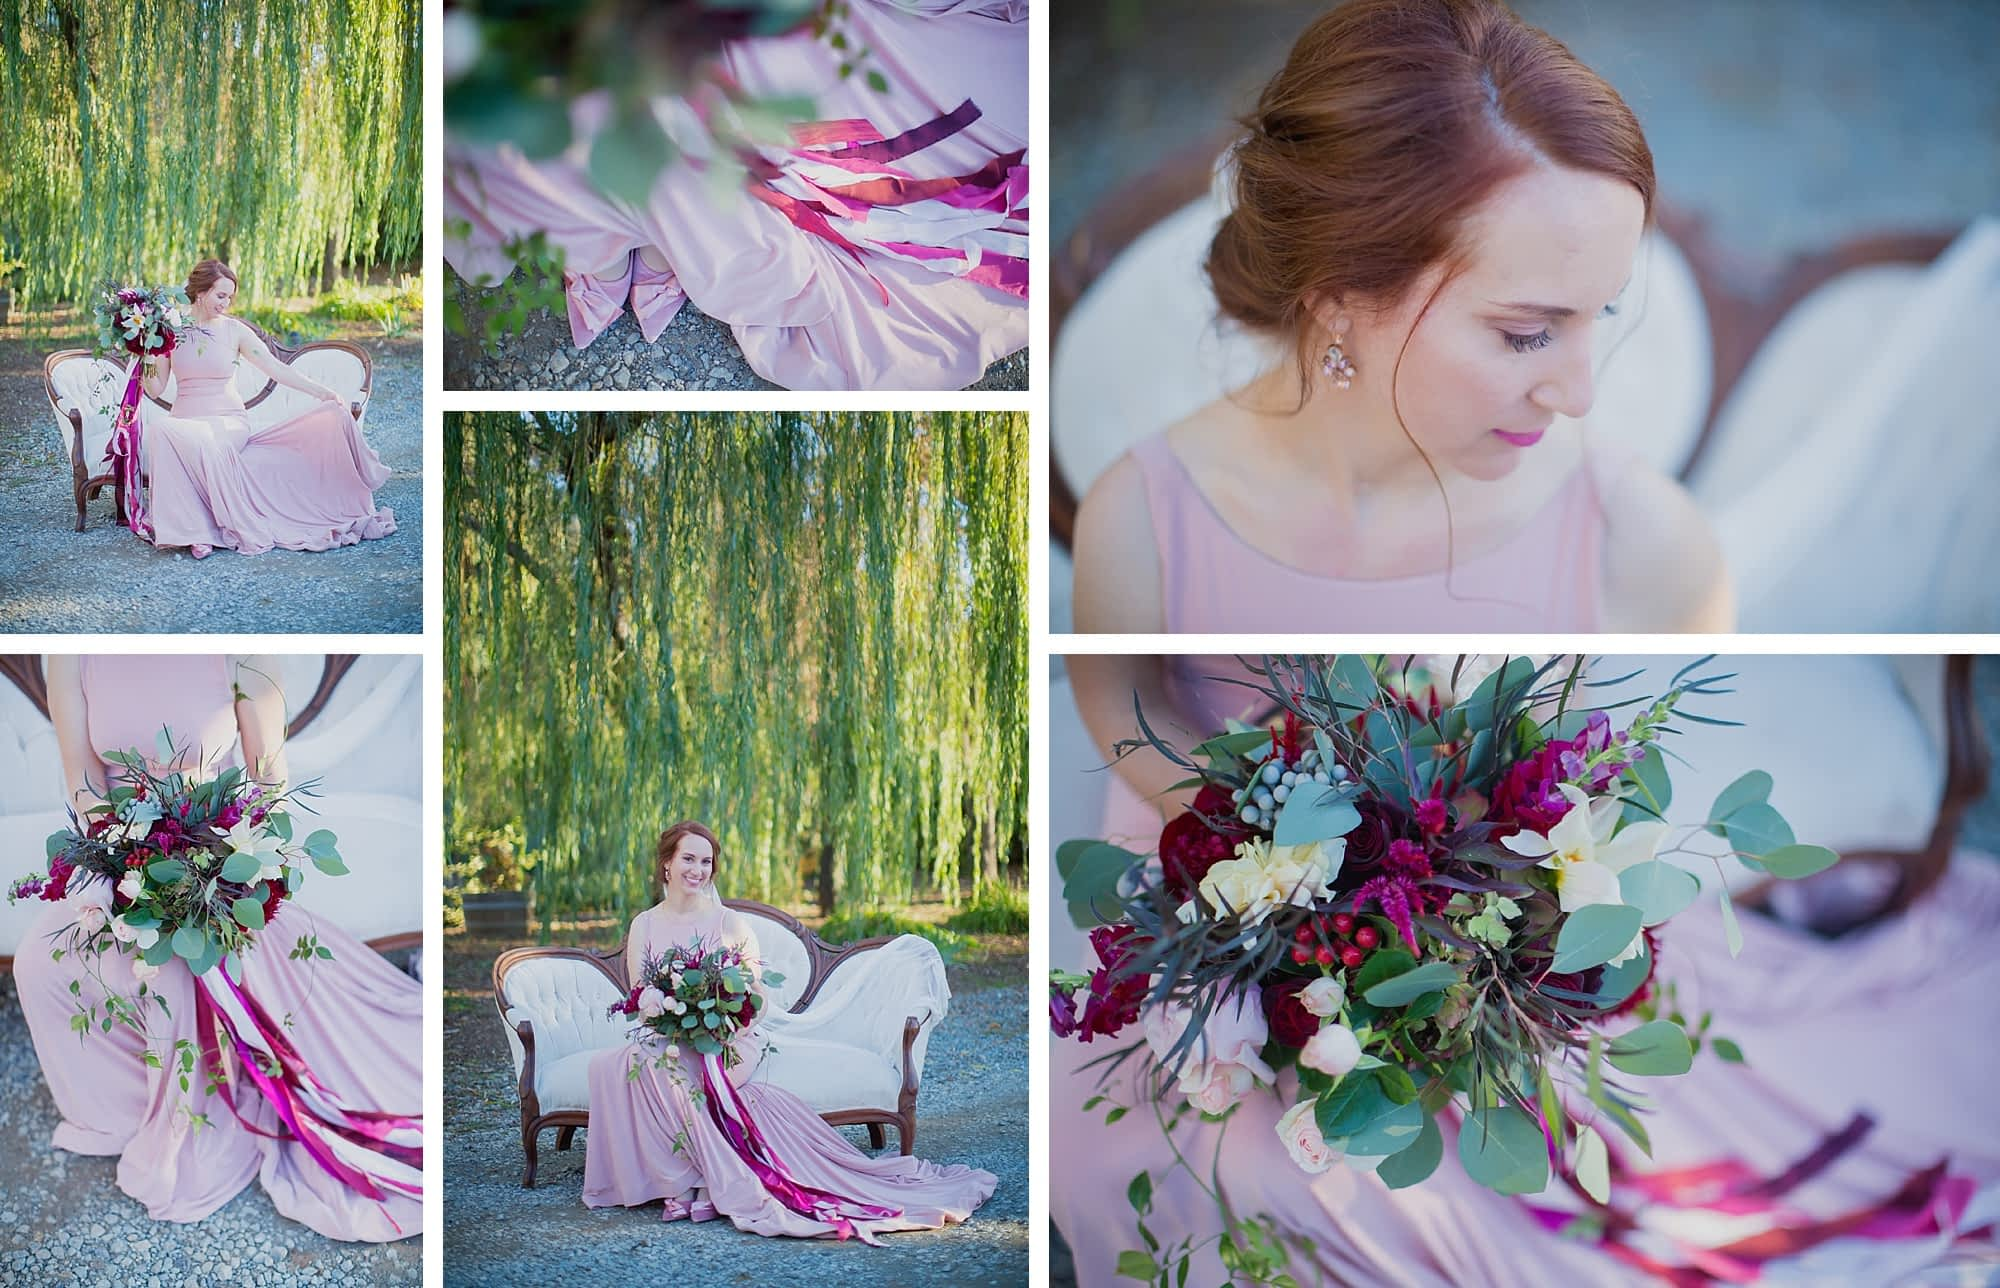 A collage of images shows off the bride in her blush gown, sitting on a vintage white couch in front of a willow tree. Her cascading bouquet has long dark pink streamers.